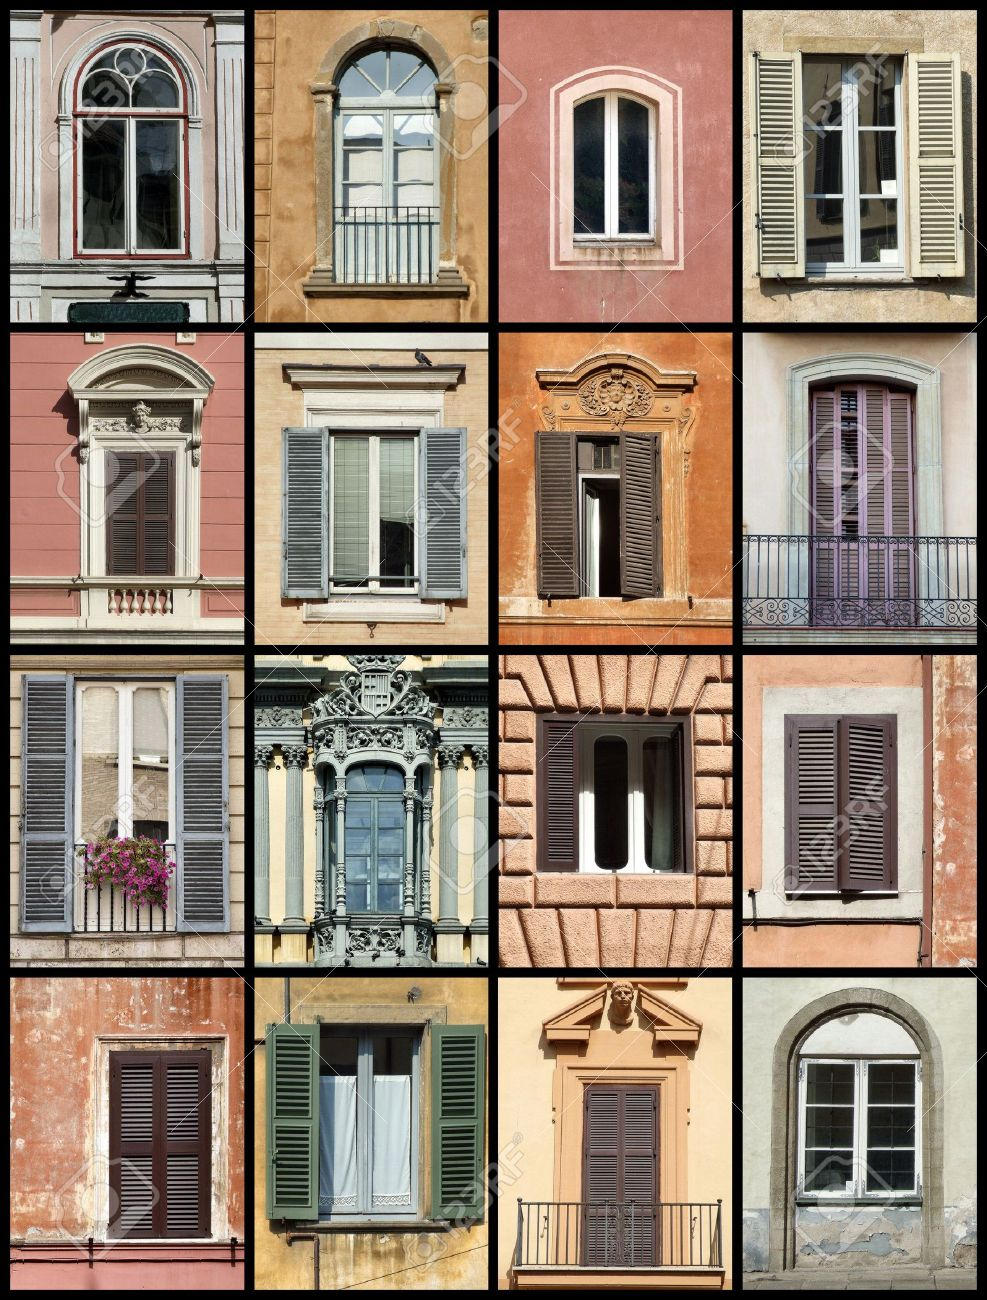 Colorful composition made of windows - architecture collage. Windows from Rome, Barcelona, Tallinn and Bergamo. Stock Photo - 999448